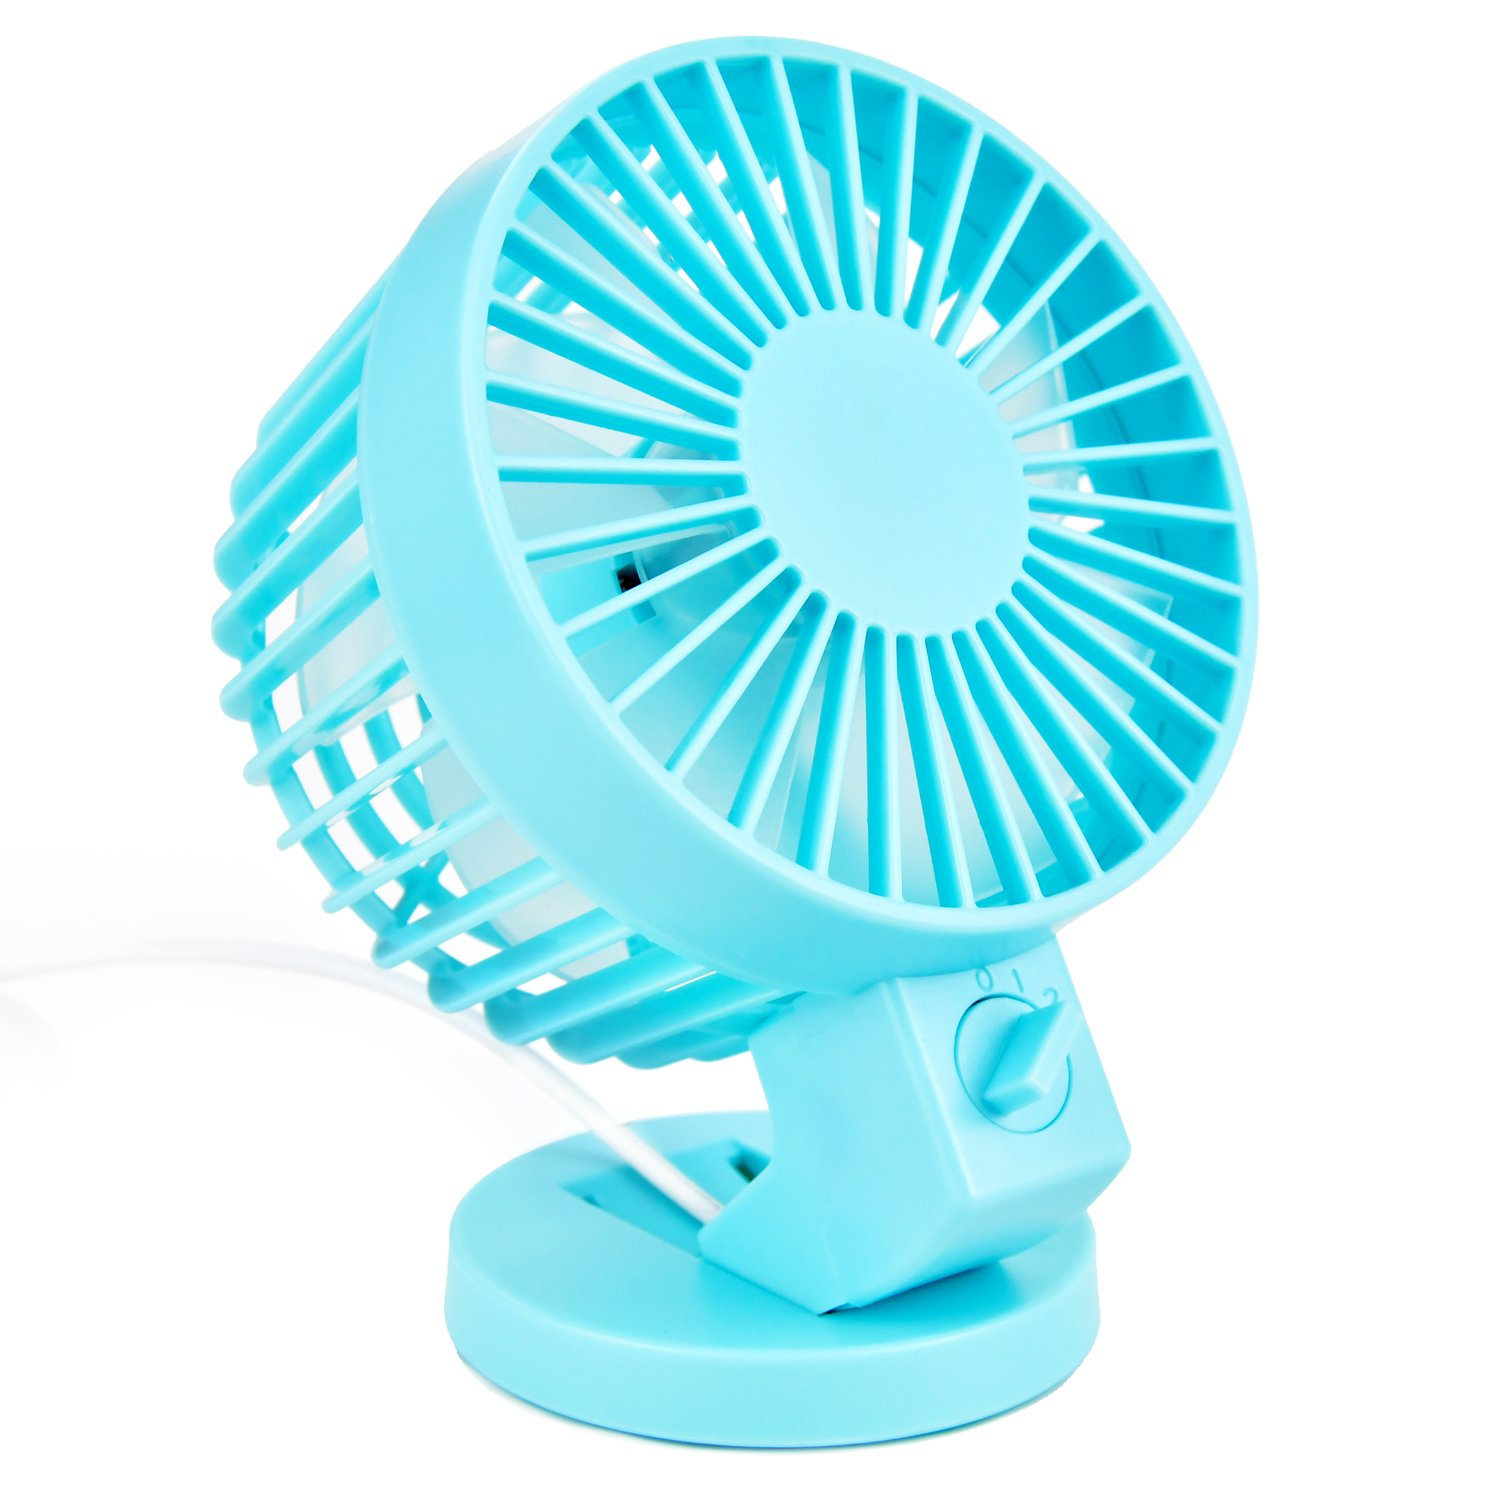 Votones Office Electric Usb Fan, Portable Cooling Fan with 2 Grade Wind Power,Handled Mini USB Clip Desk Fan Compatible for Notebook,Computer and Power Bank(Blue)